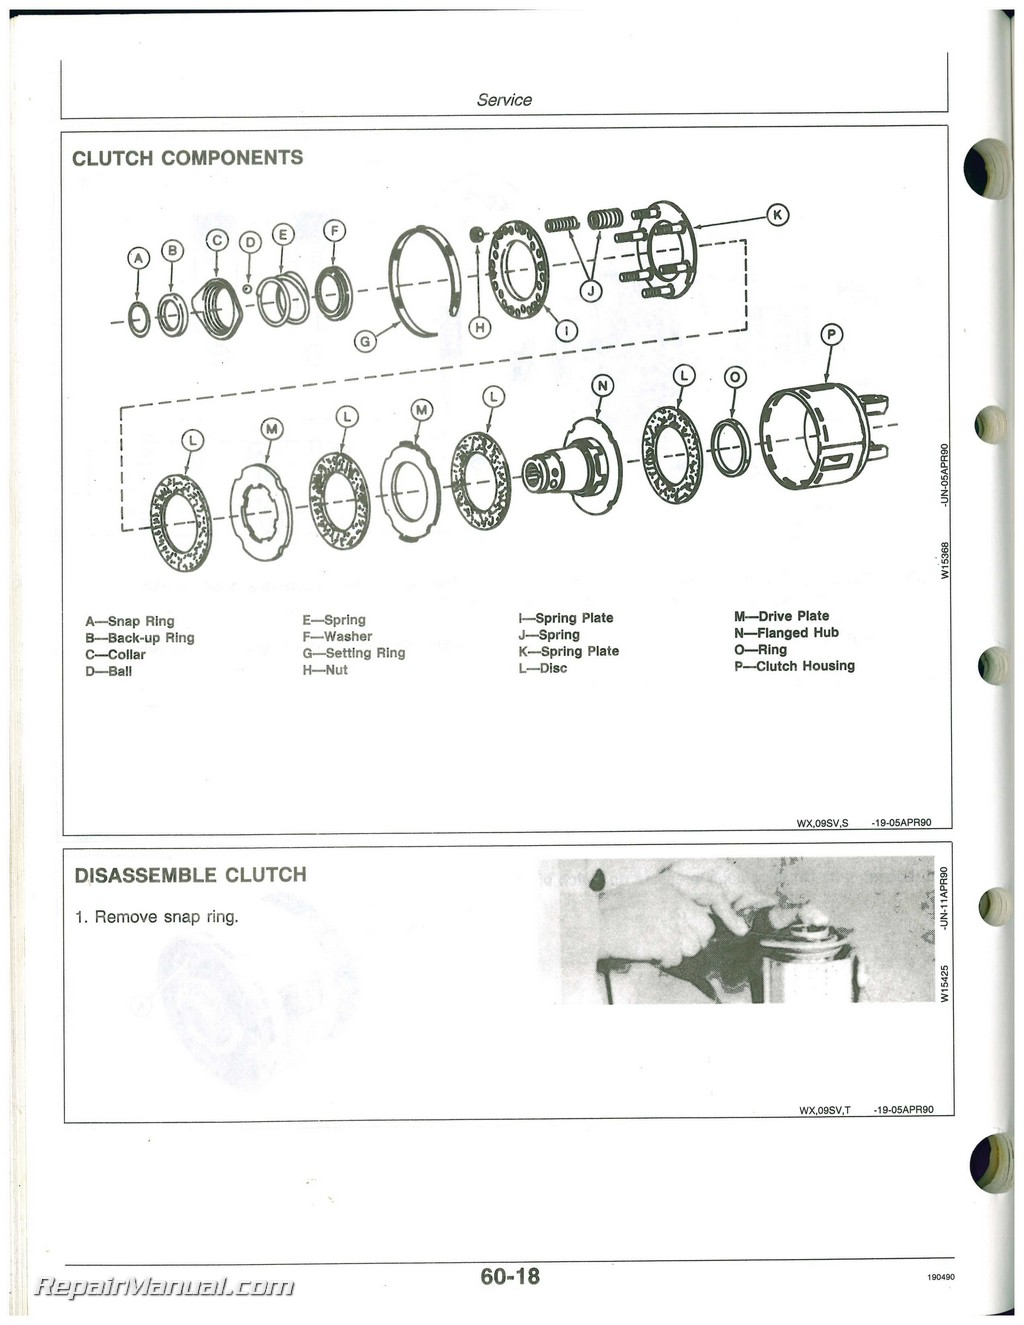 Used John Deere 609 And 709 Rotary Cutter Operators Manual